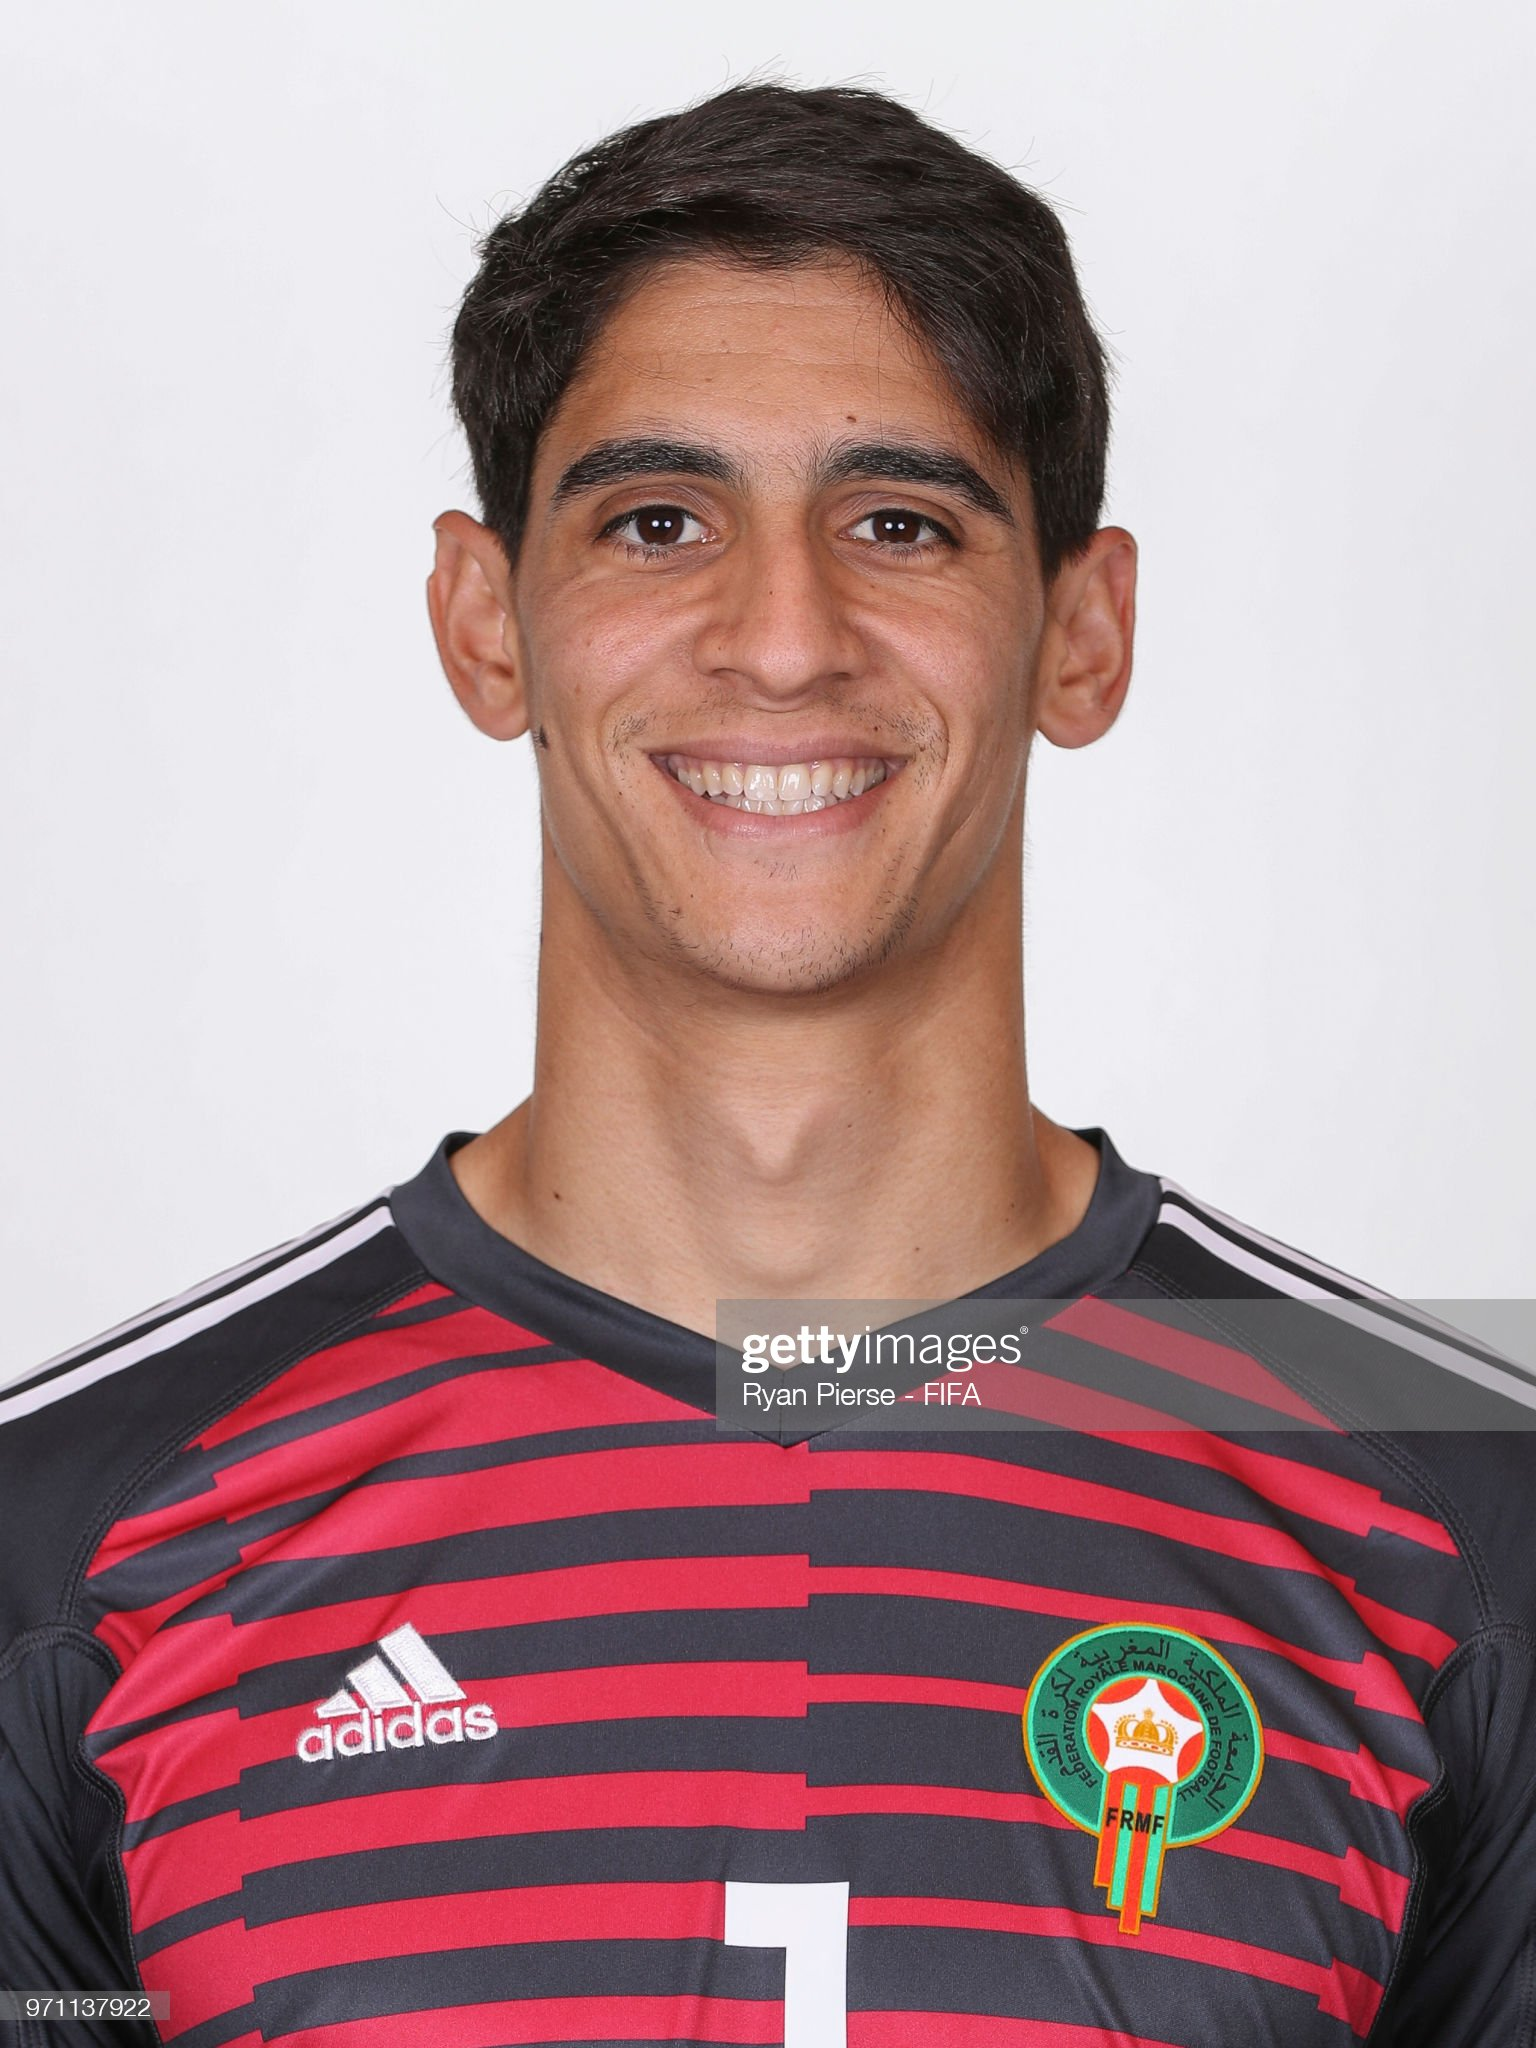 Norteafricanos Yassine-bounou-of-morocco-poses-during-the-official-fifa-world-cup-picture-id971137922?s=2048x2048